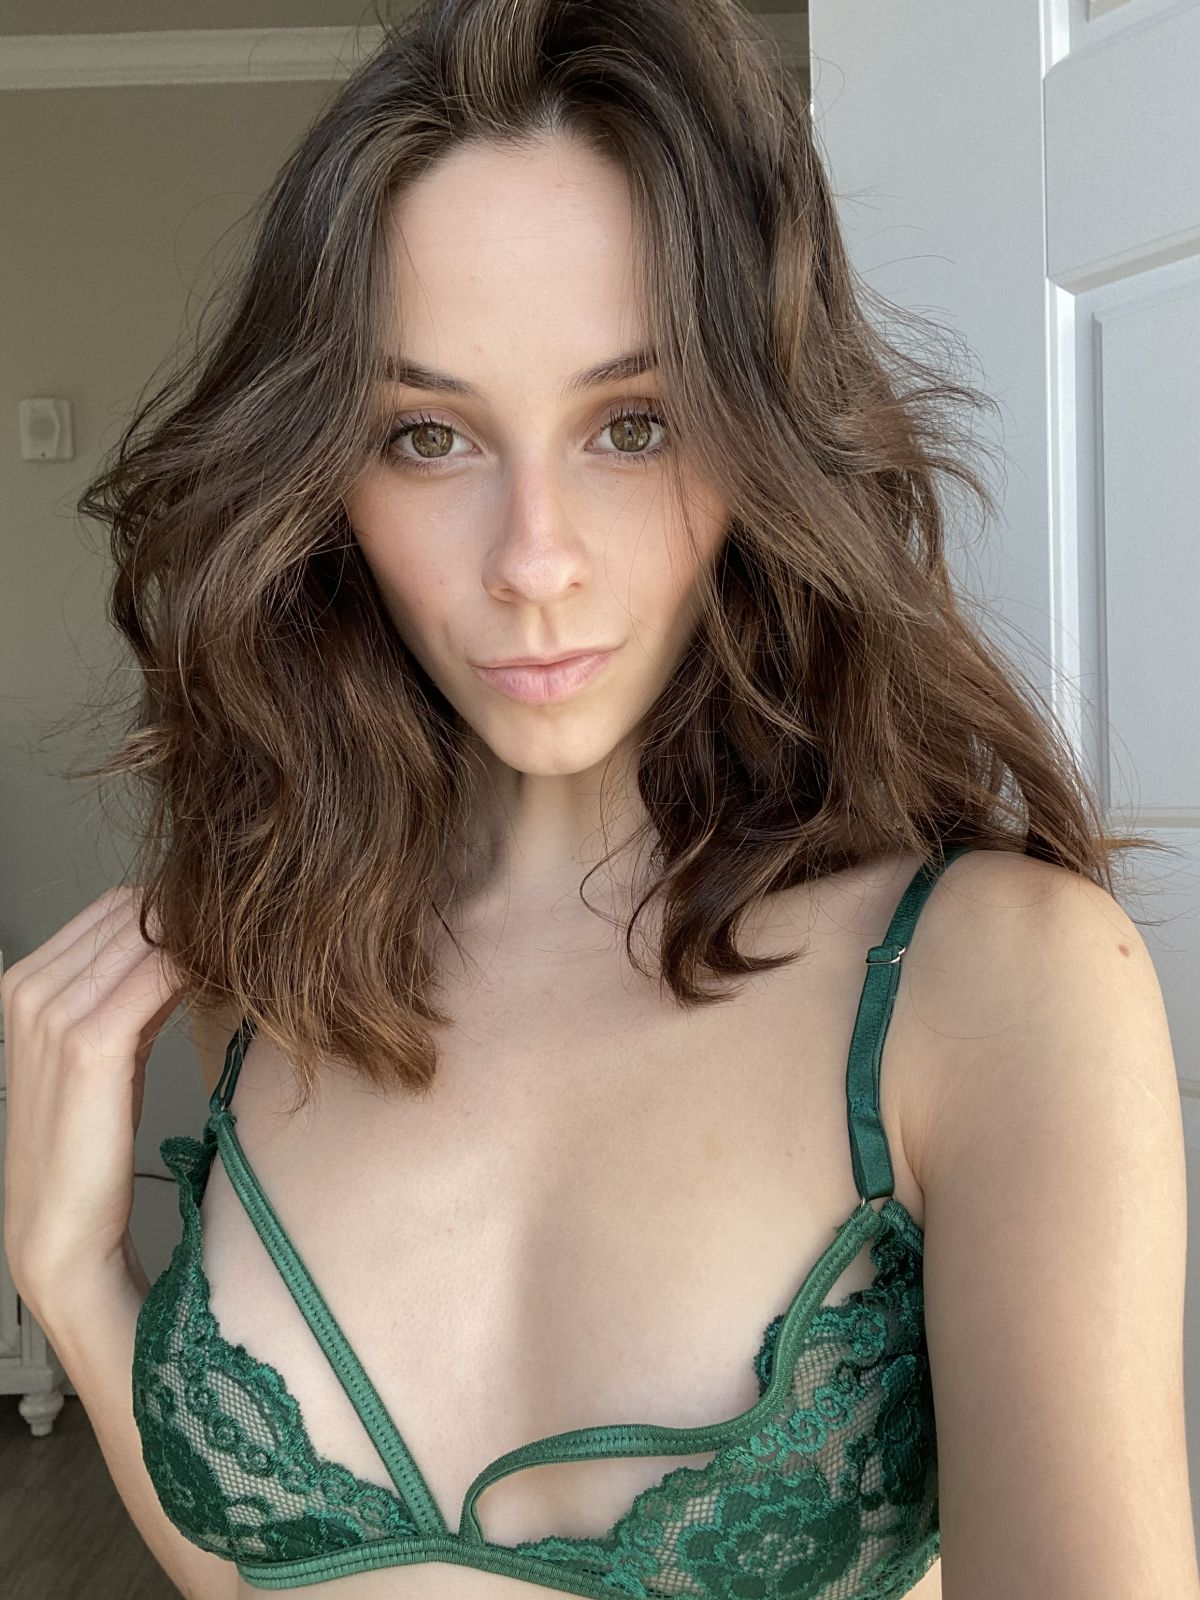 Free Lilahanne onlyfans onlyfans leaked